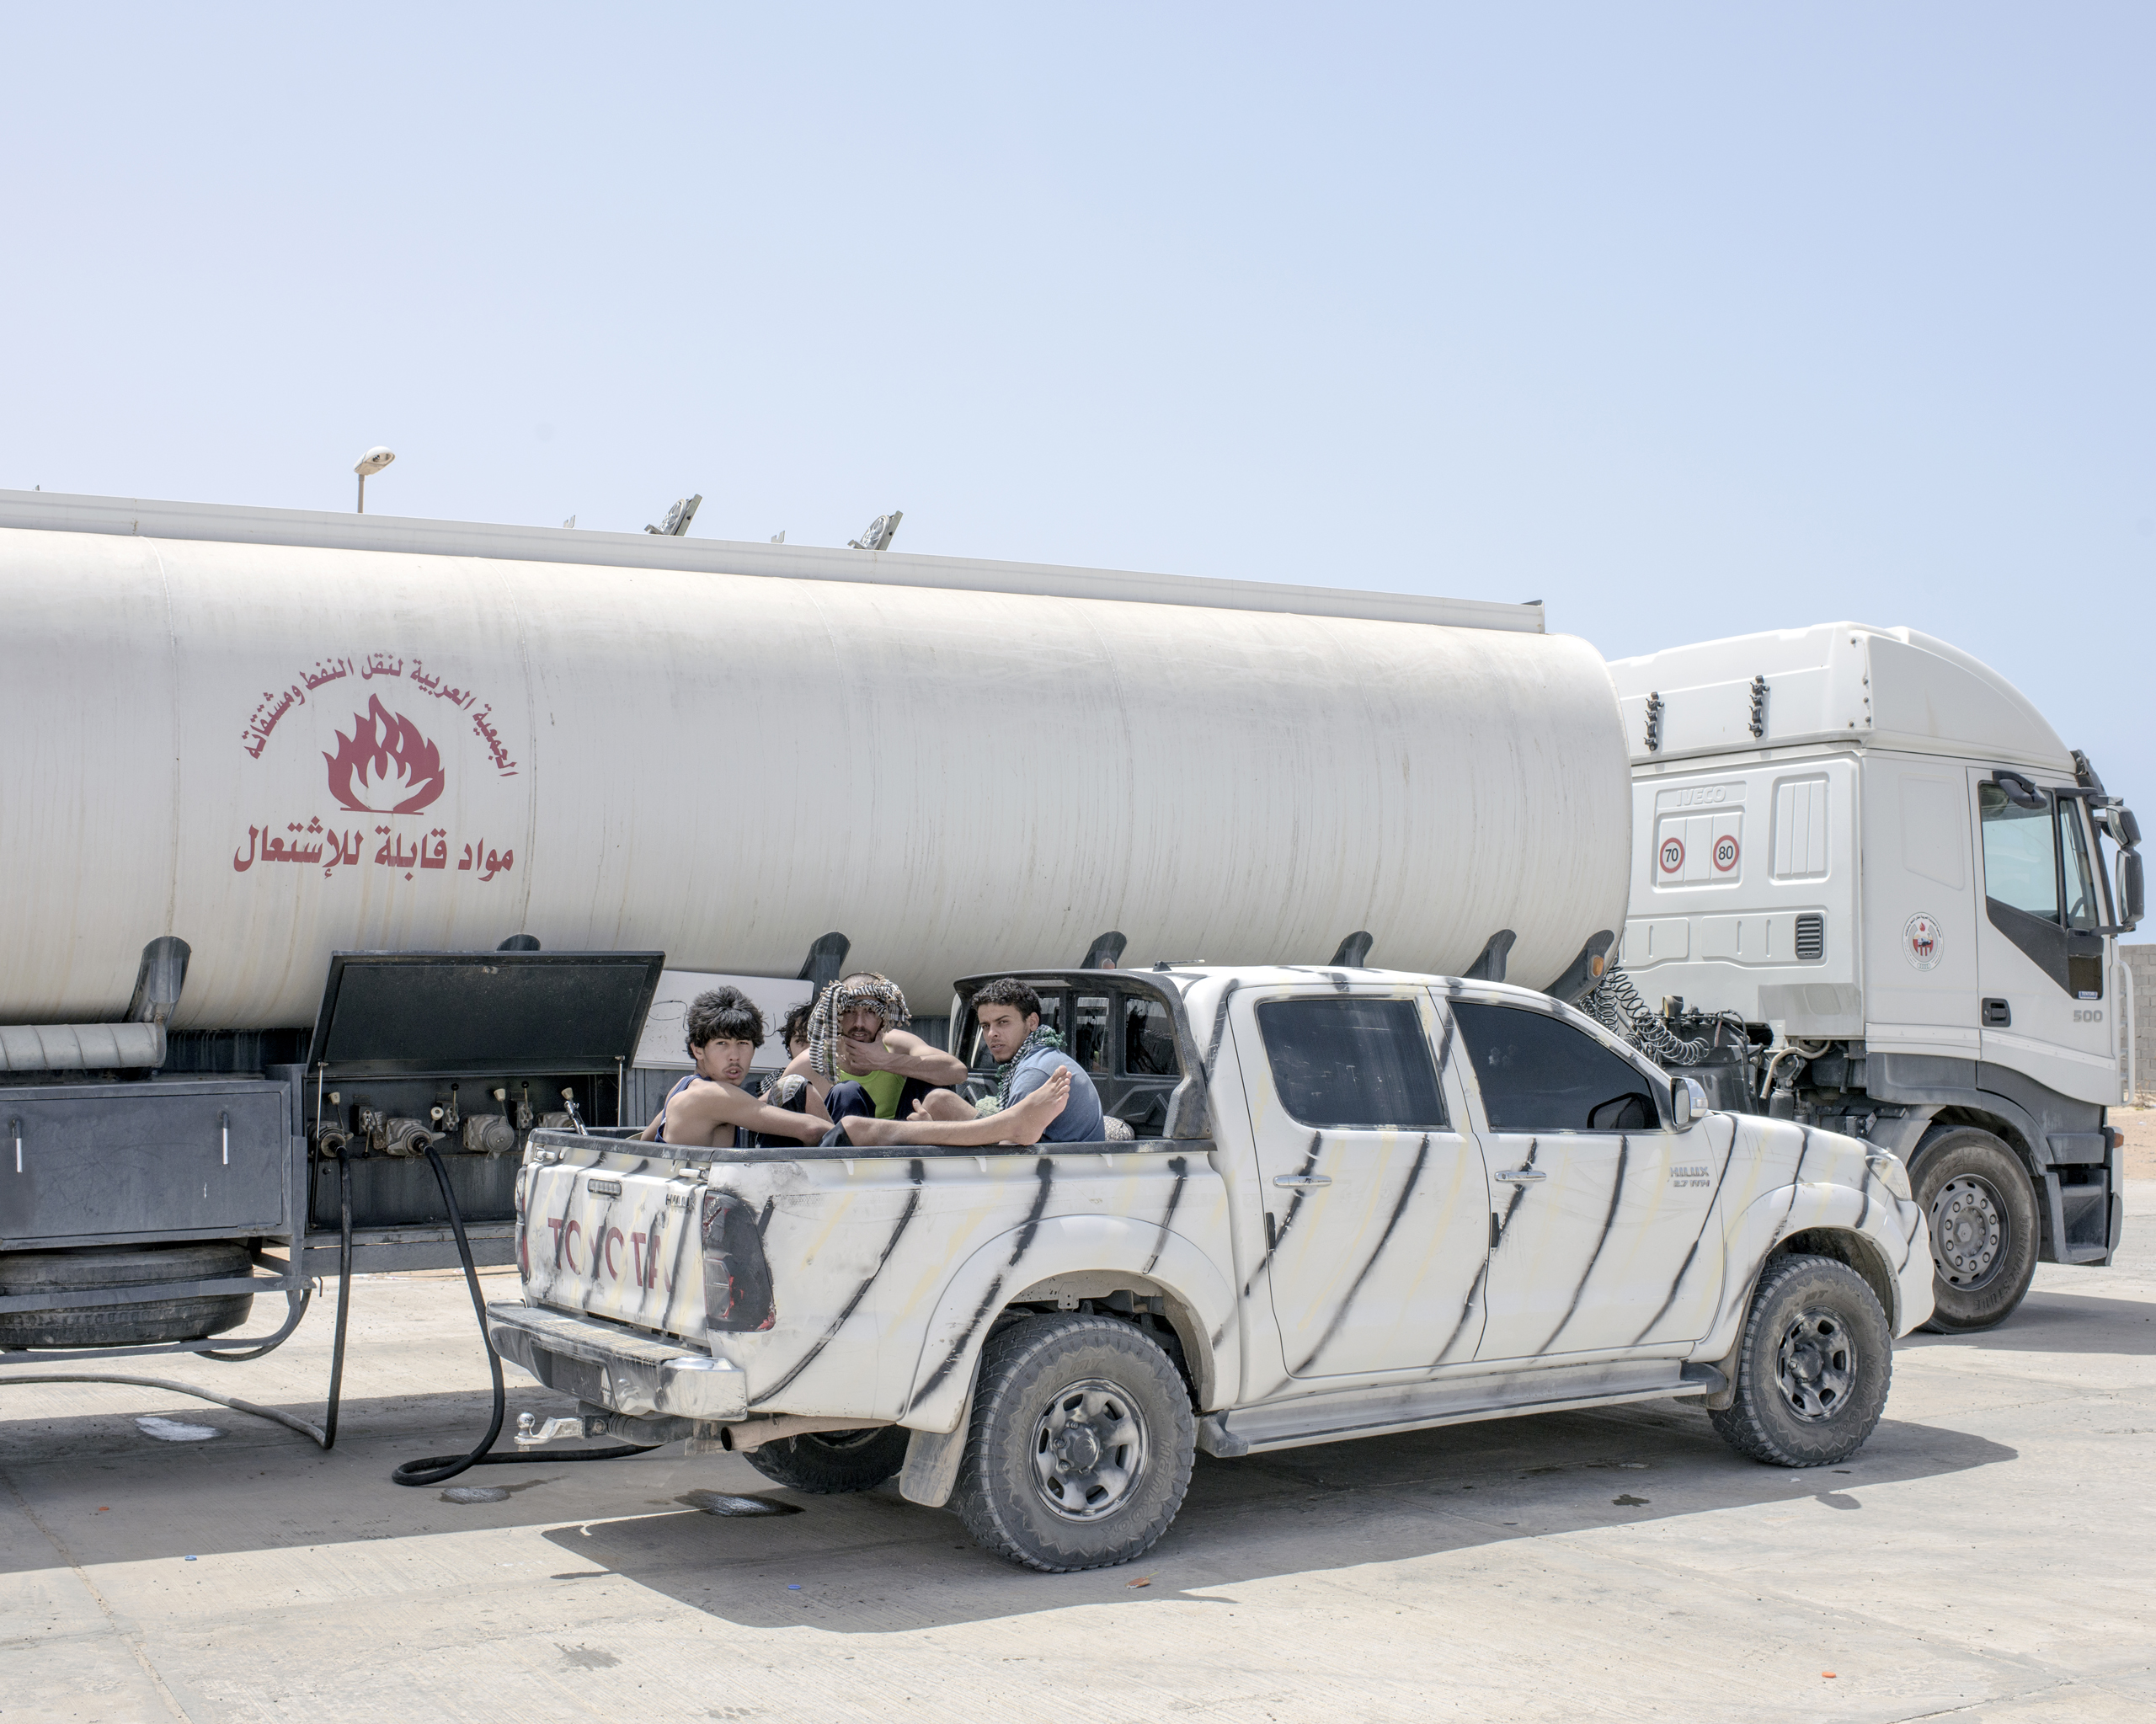 A group of Libyan fighters refuel their vehicle from a tanker at a petrol station outside Sirt, July 2016